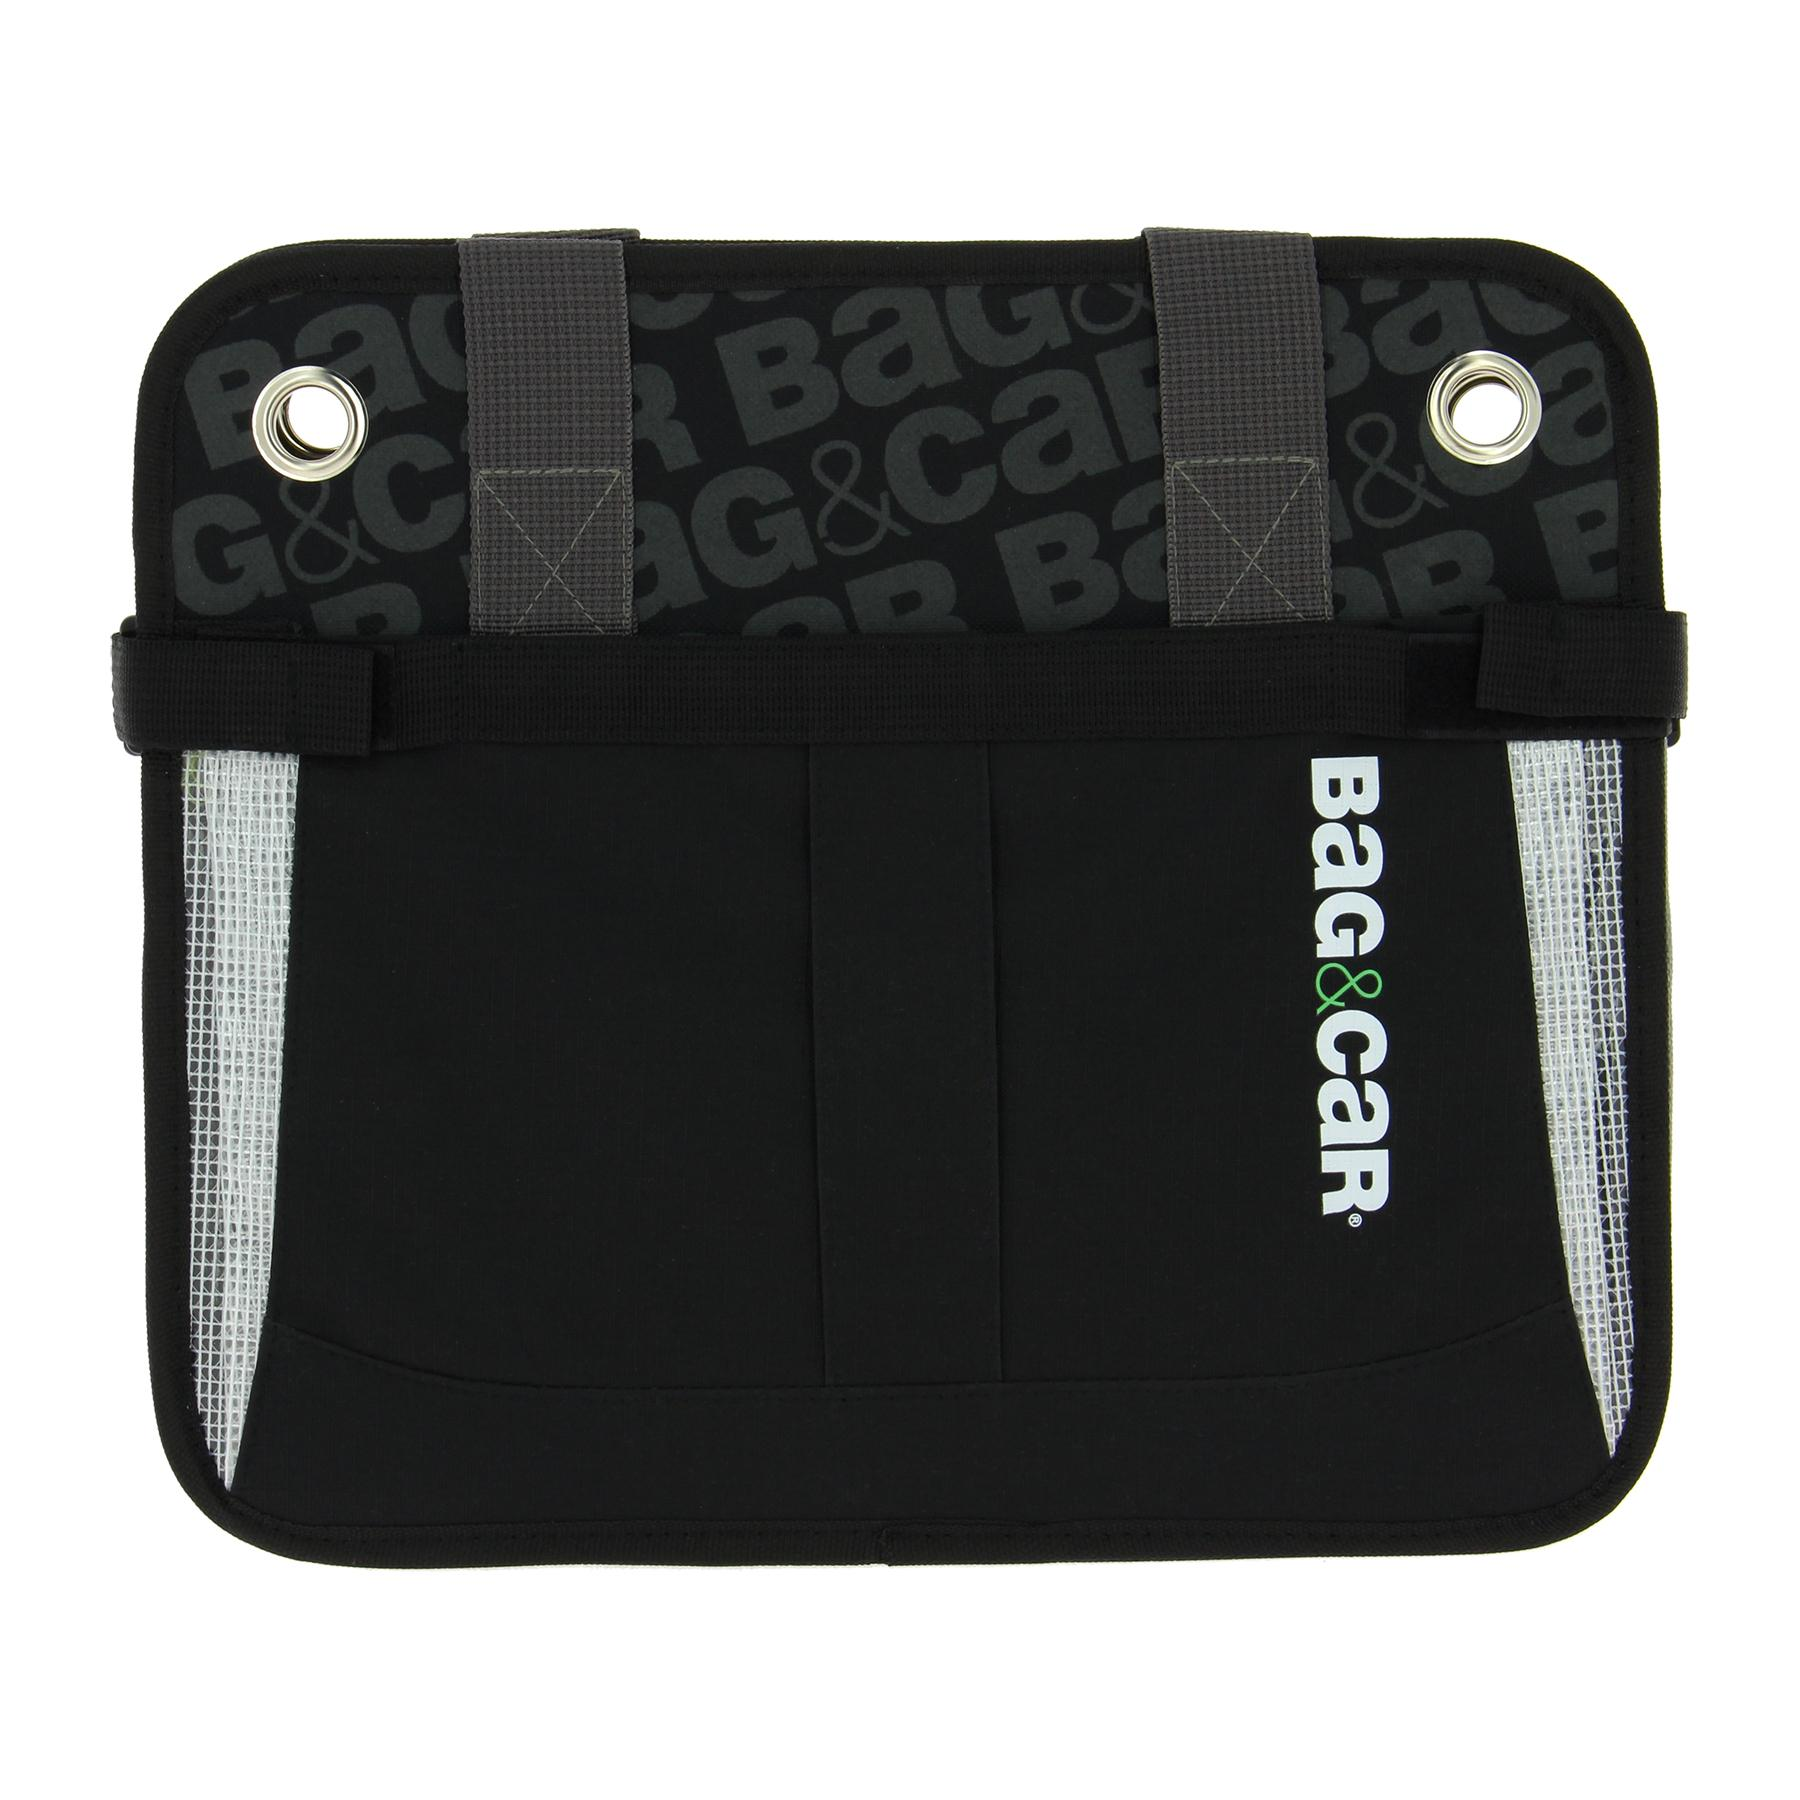 Boot / Luggage compartment organiser BAG&CAR 168006 rating